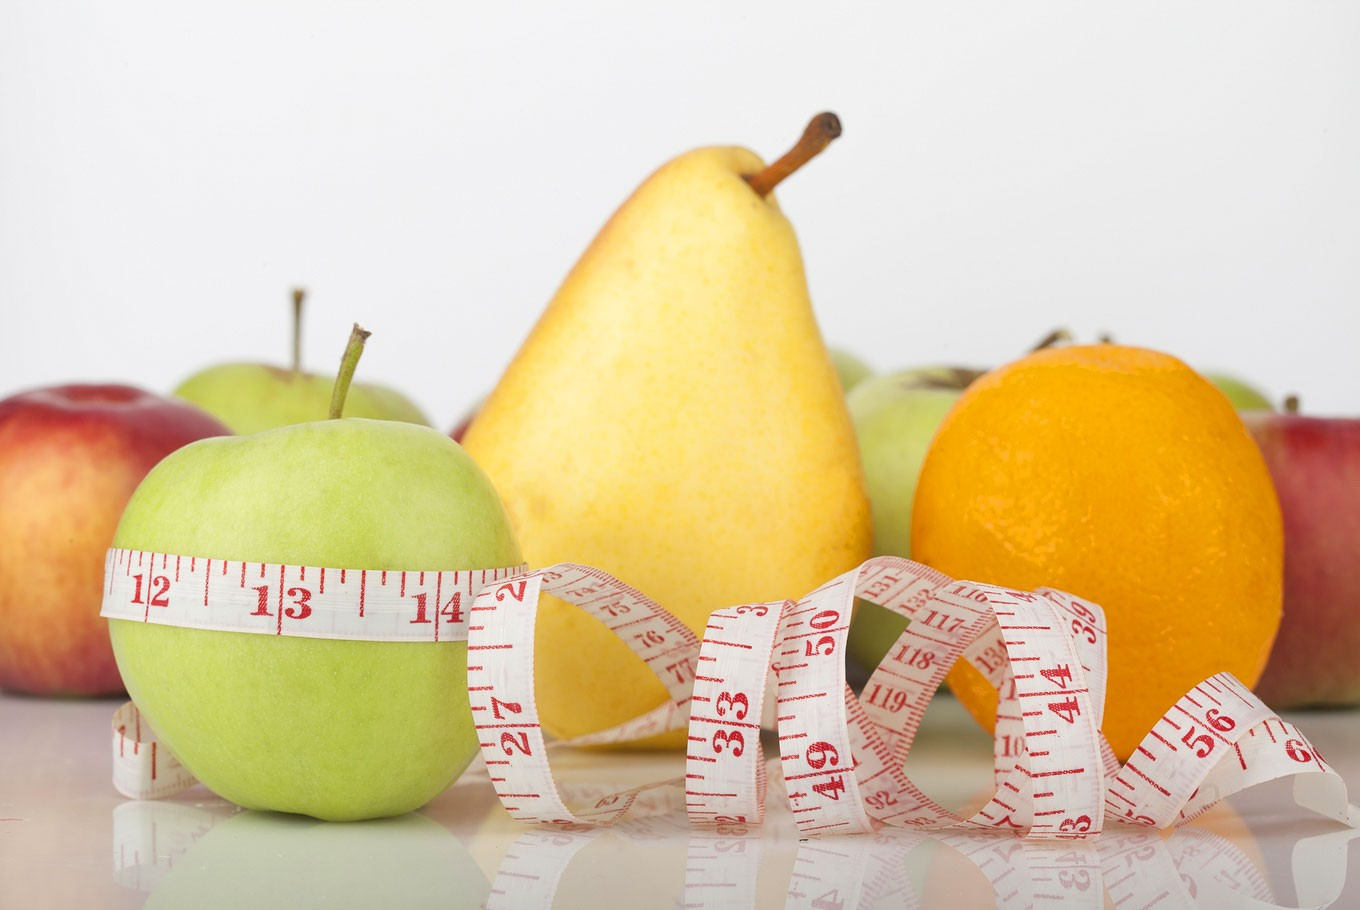 Apple and pear body shapes: Which is healthier? - Health - The